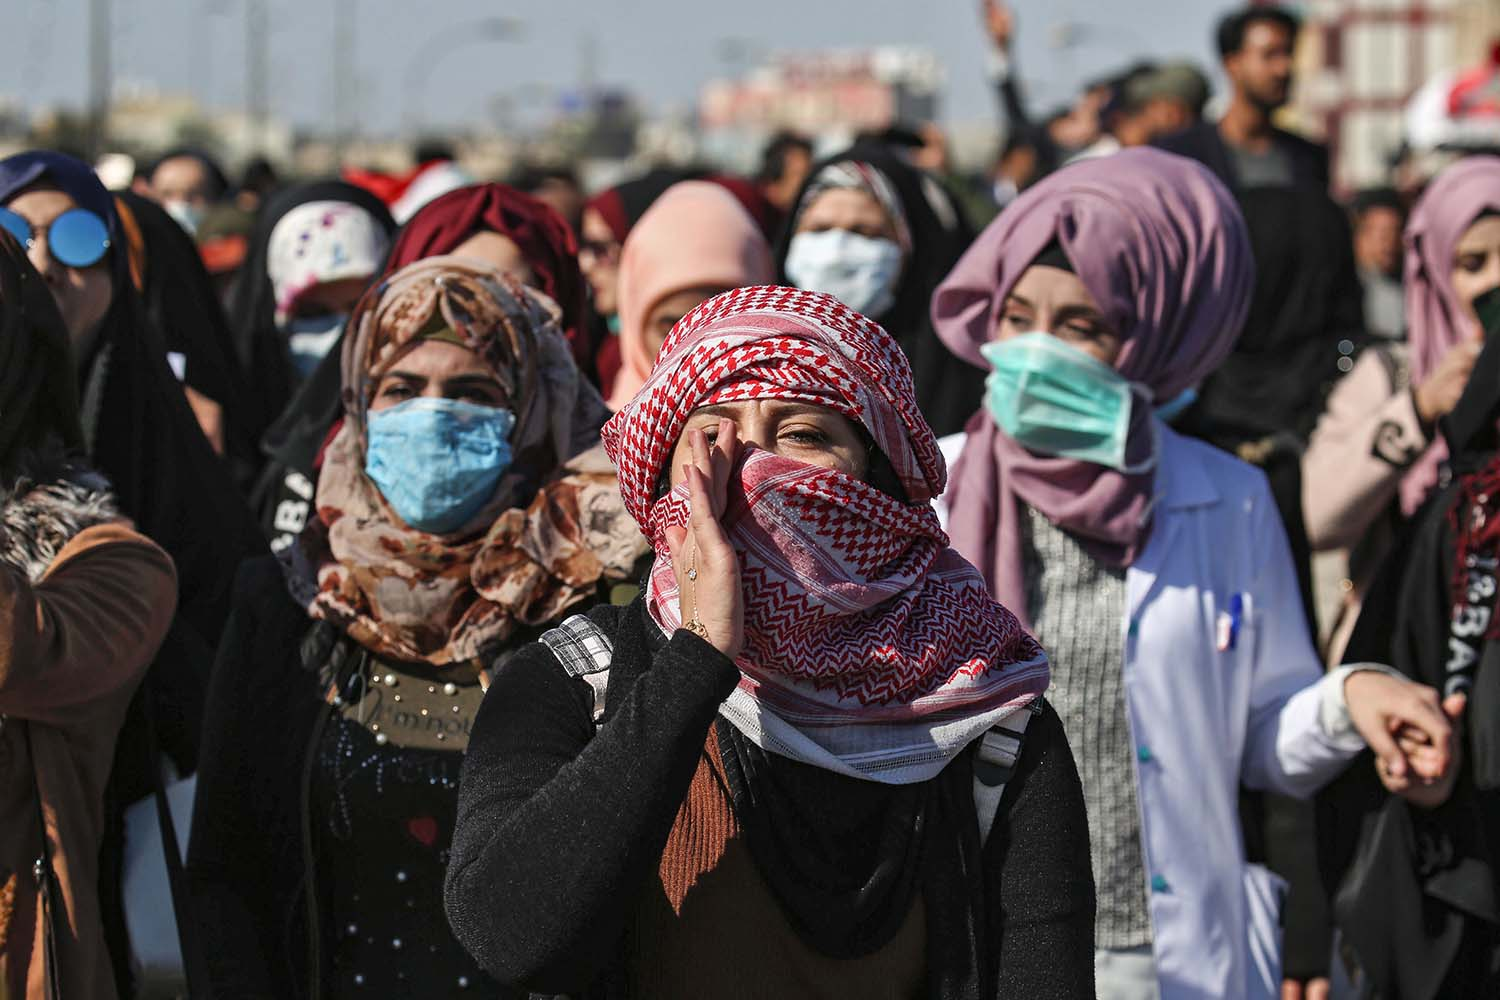 Anti-government protesters chant slogans as they march during a demonstration in the central Iraqi city of Karbala on Jan. 26. MOHAMMED SAWAF/AFP via Getty Images